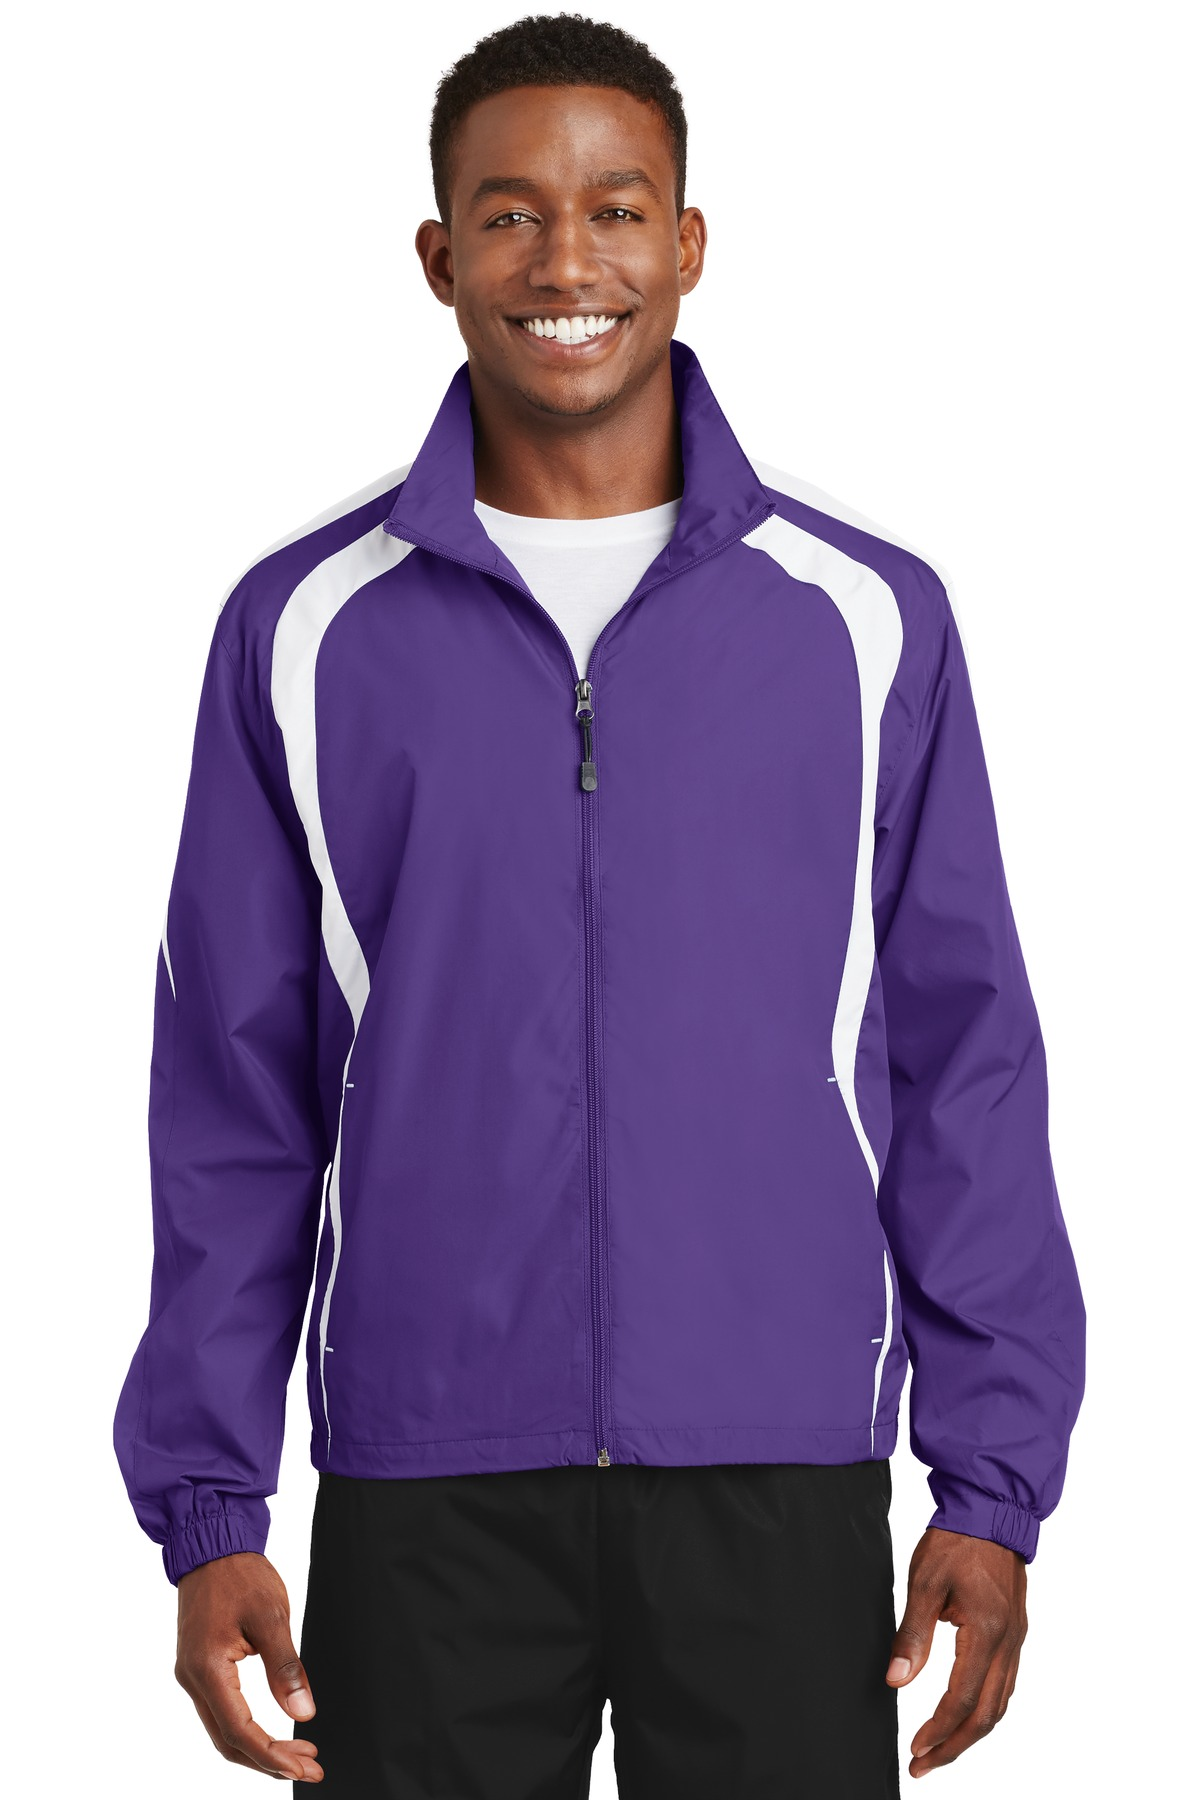 Sport-Tek ®  Colorblock Raglan Jacket. JST60 - Purple/White